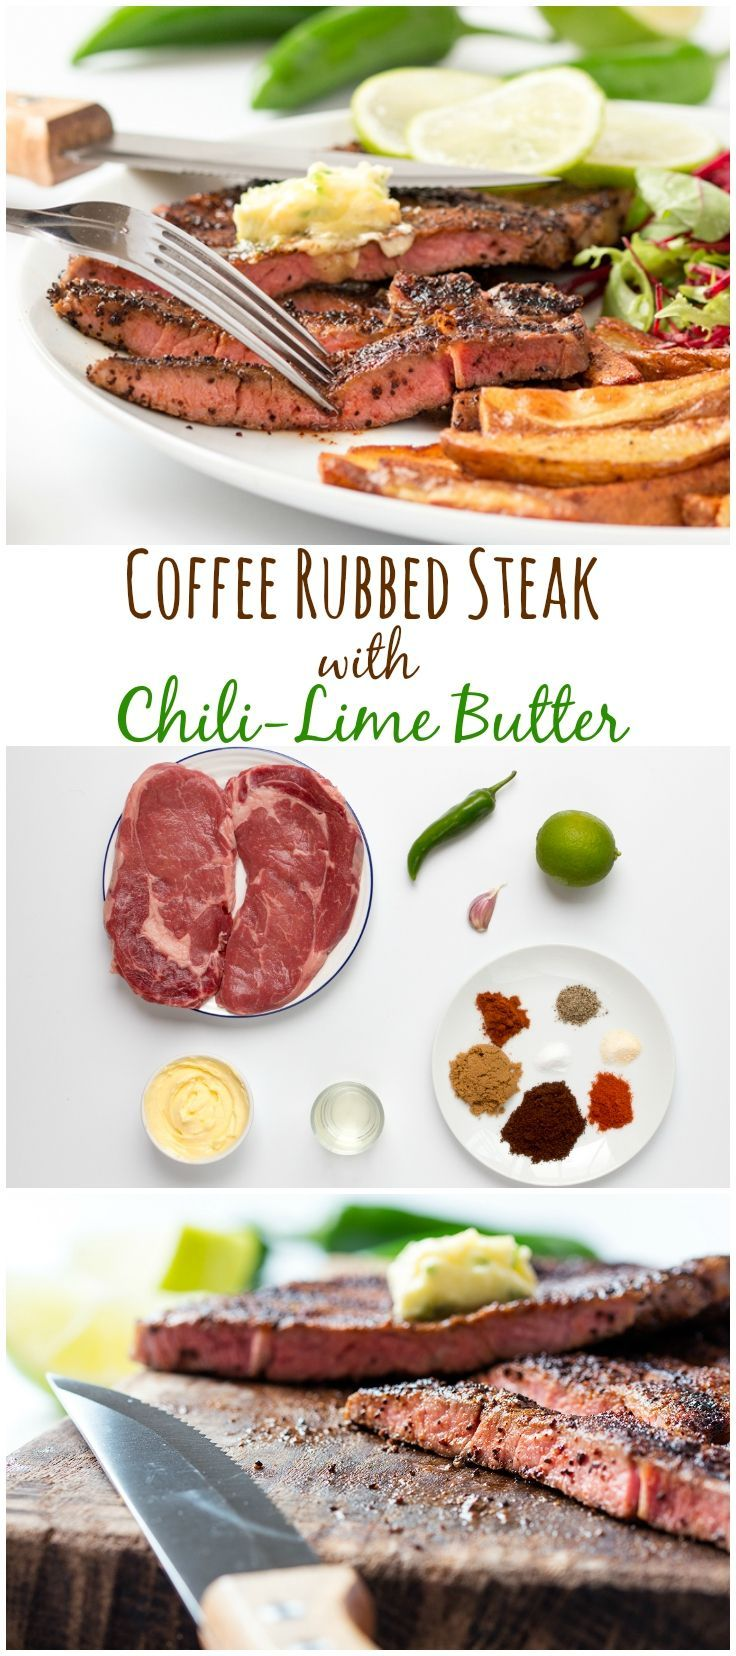 Coffee Rubbed Steak Recipe Meat Recipes Beef dishes